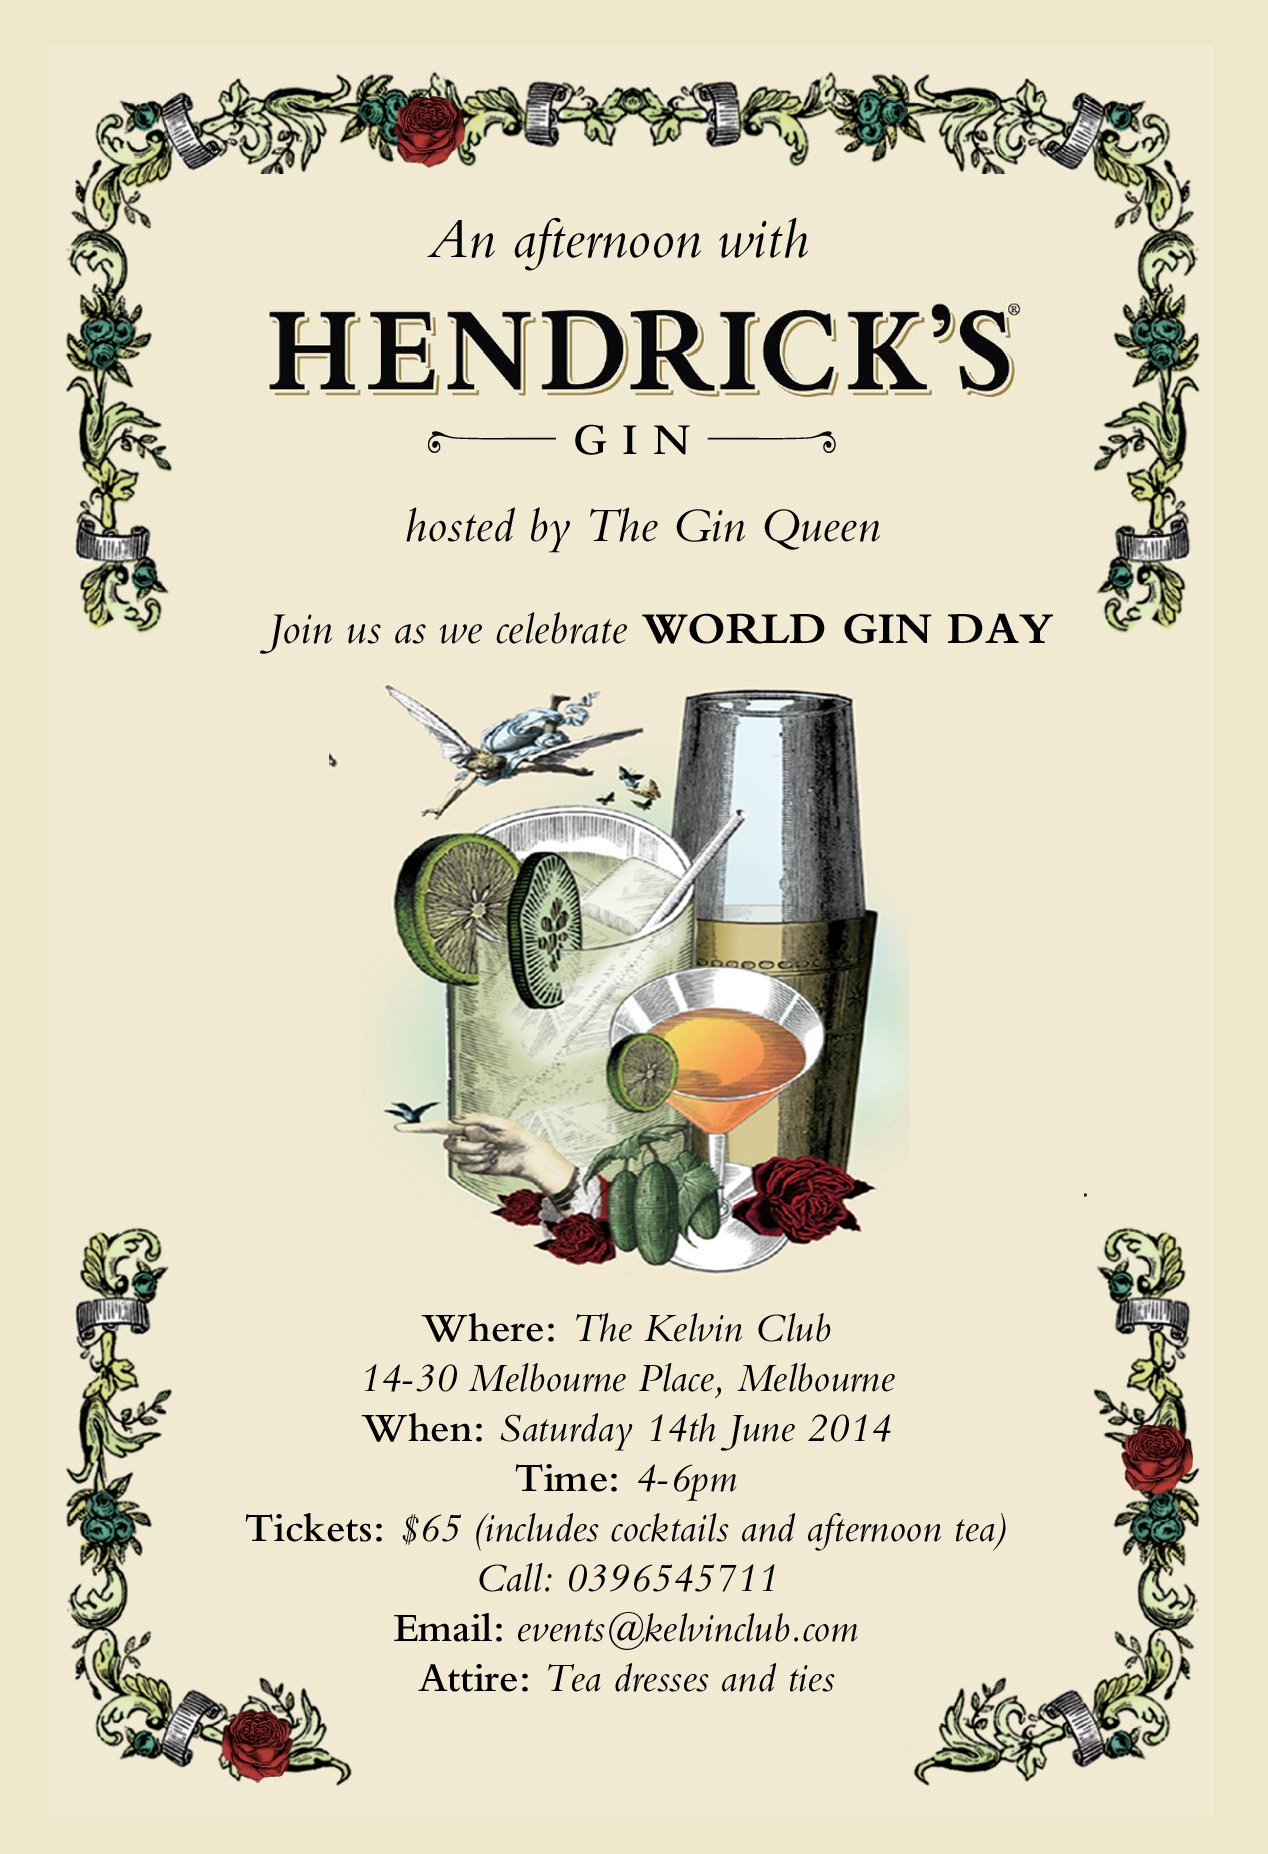 The Gin Queen's World Gin Day ceelebration with The Kelvin Club and Hendrick's Gin